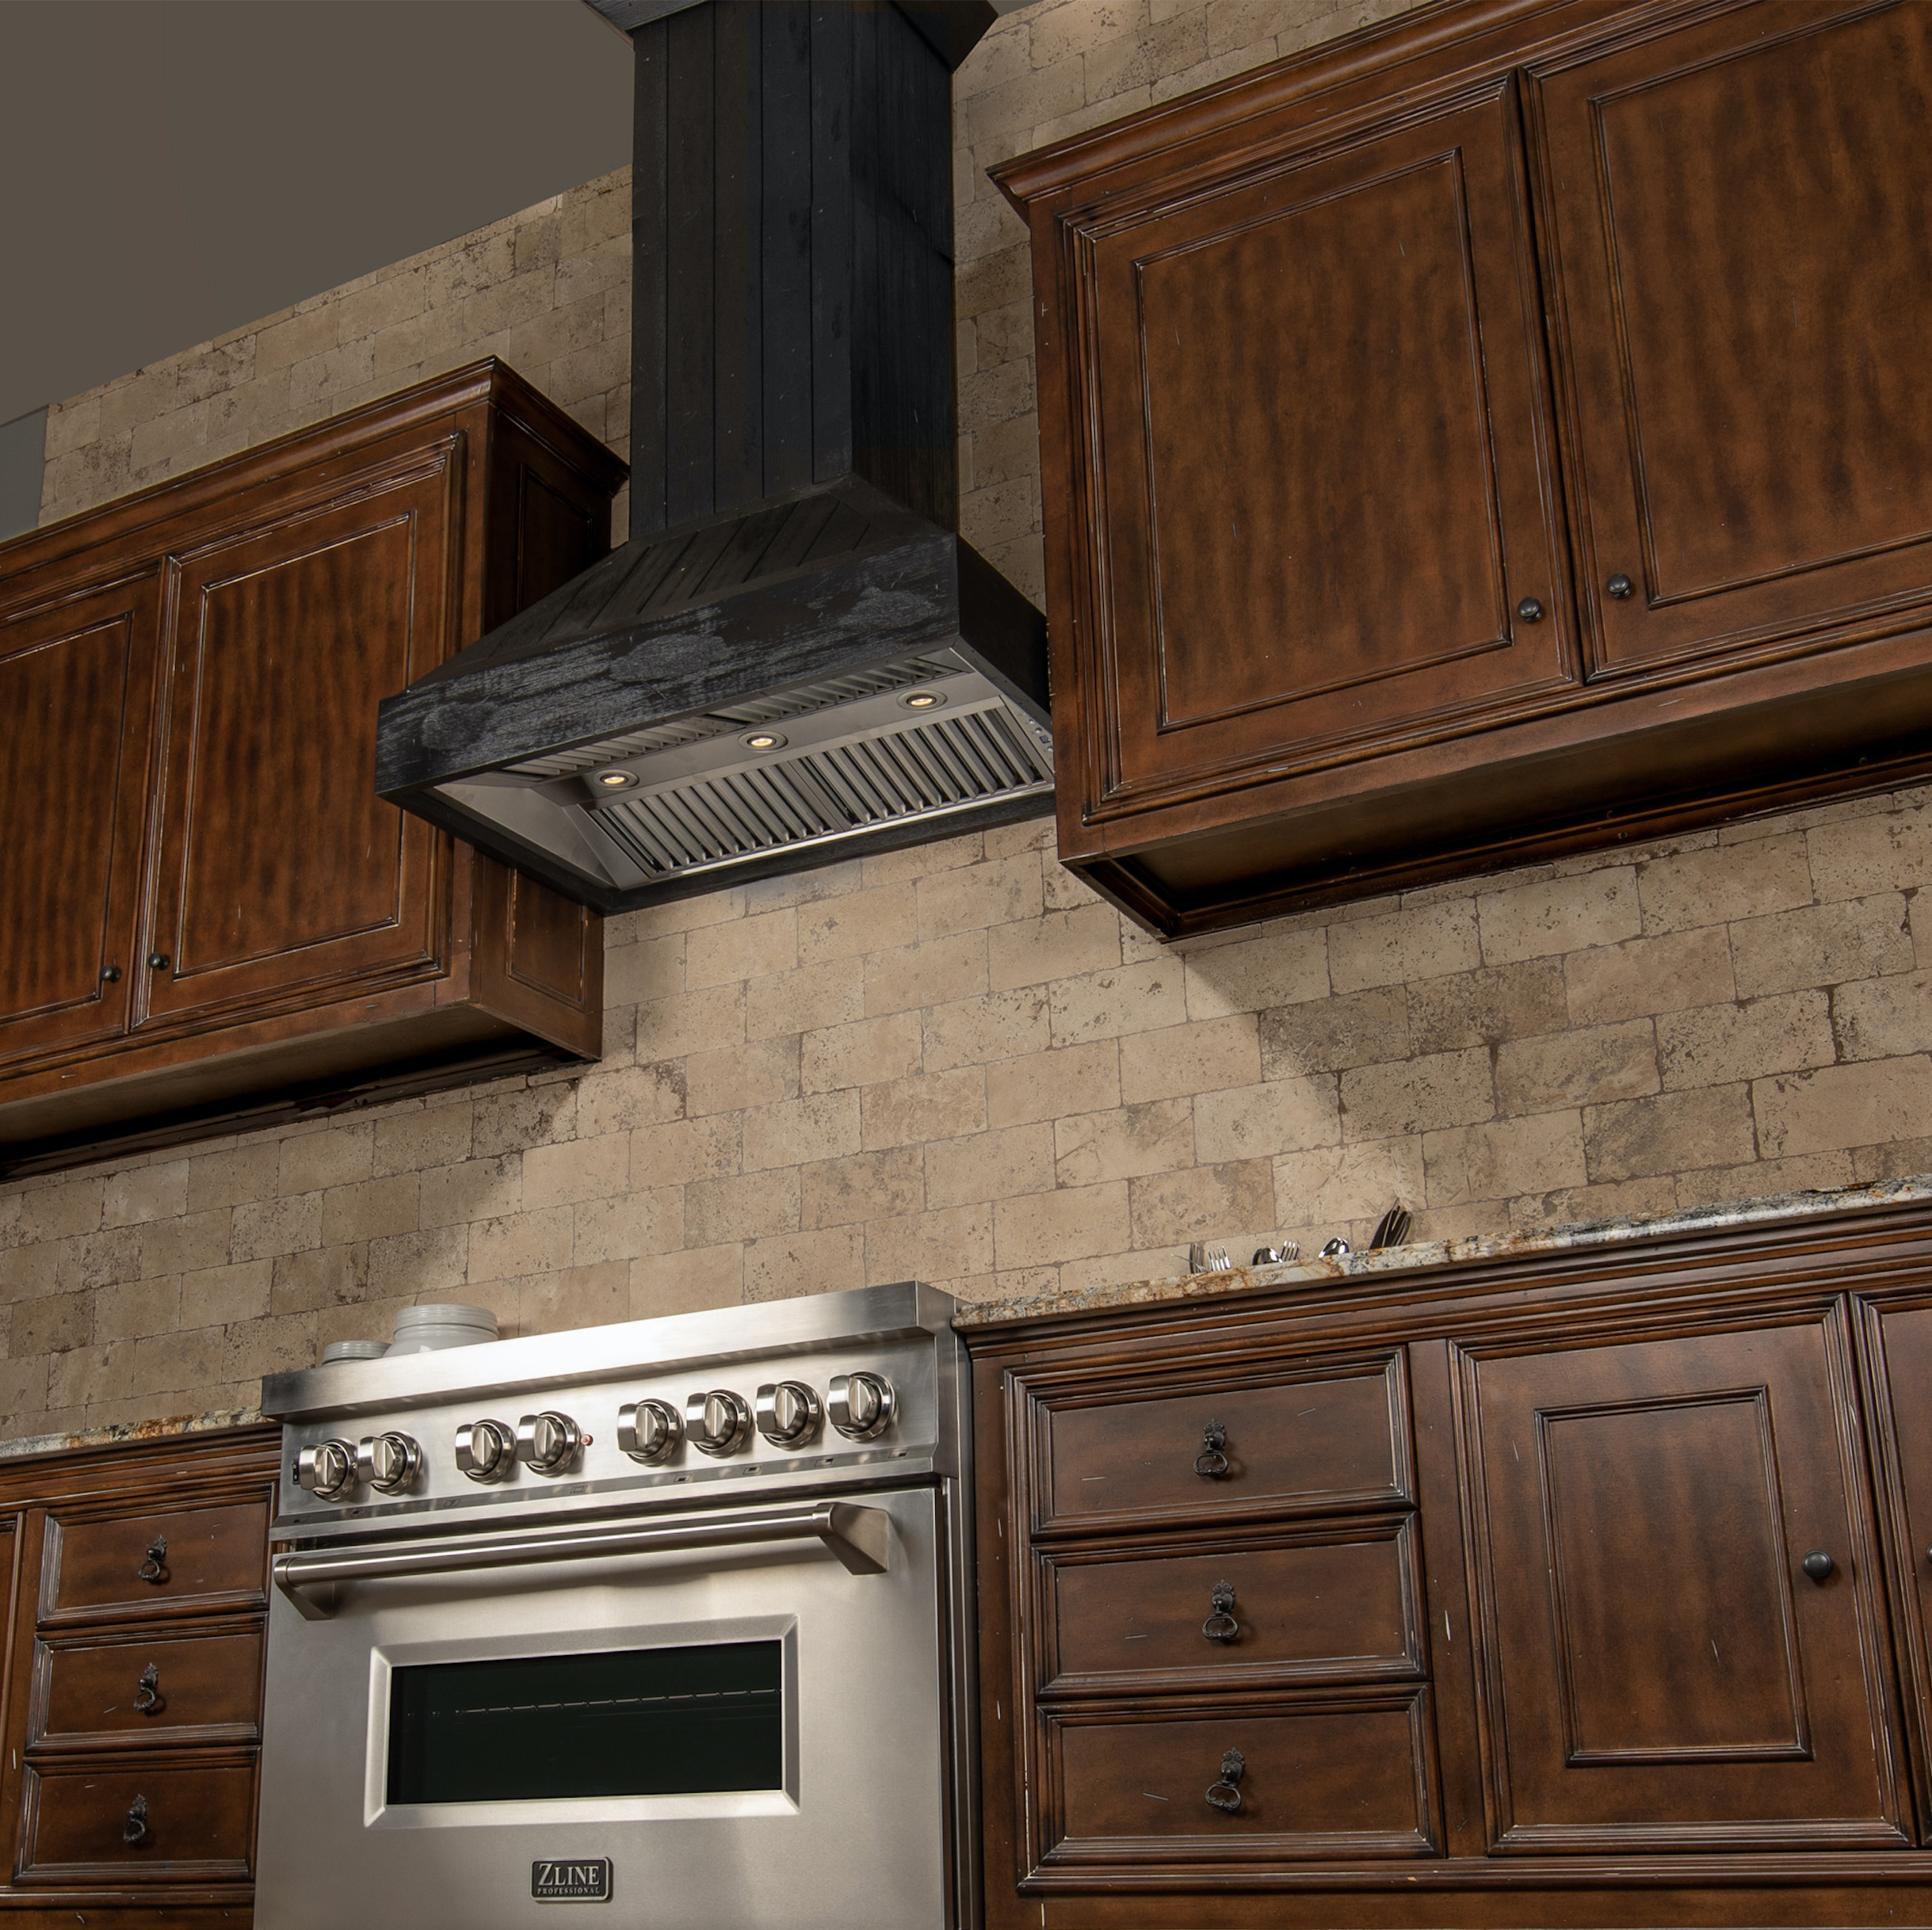 900 Rangehood Zline 30 In Shiplap Wooden Wall Mount Range Hood In Rustic Dark